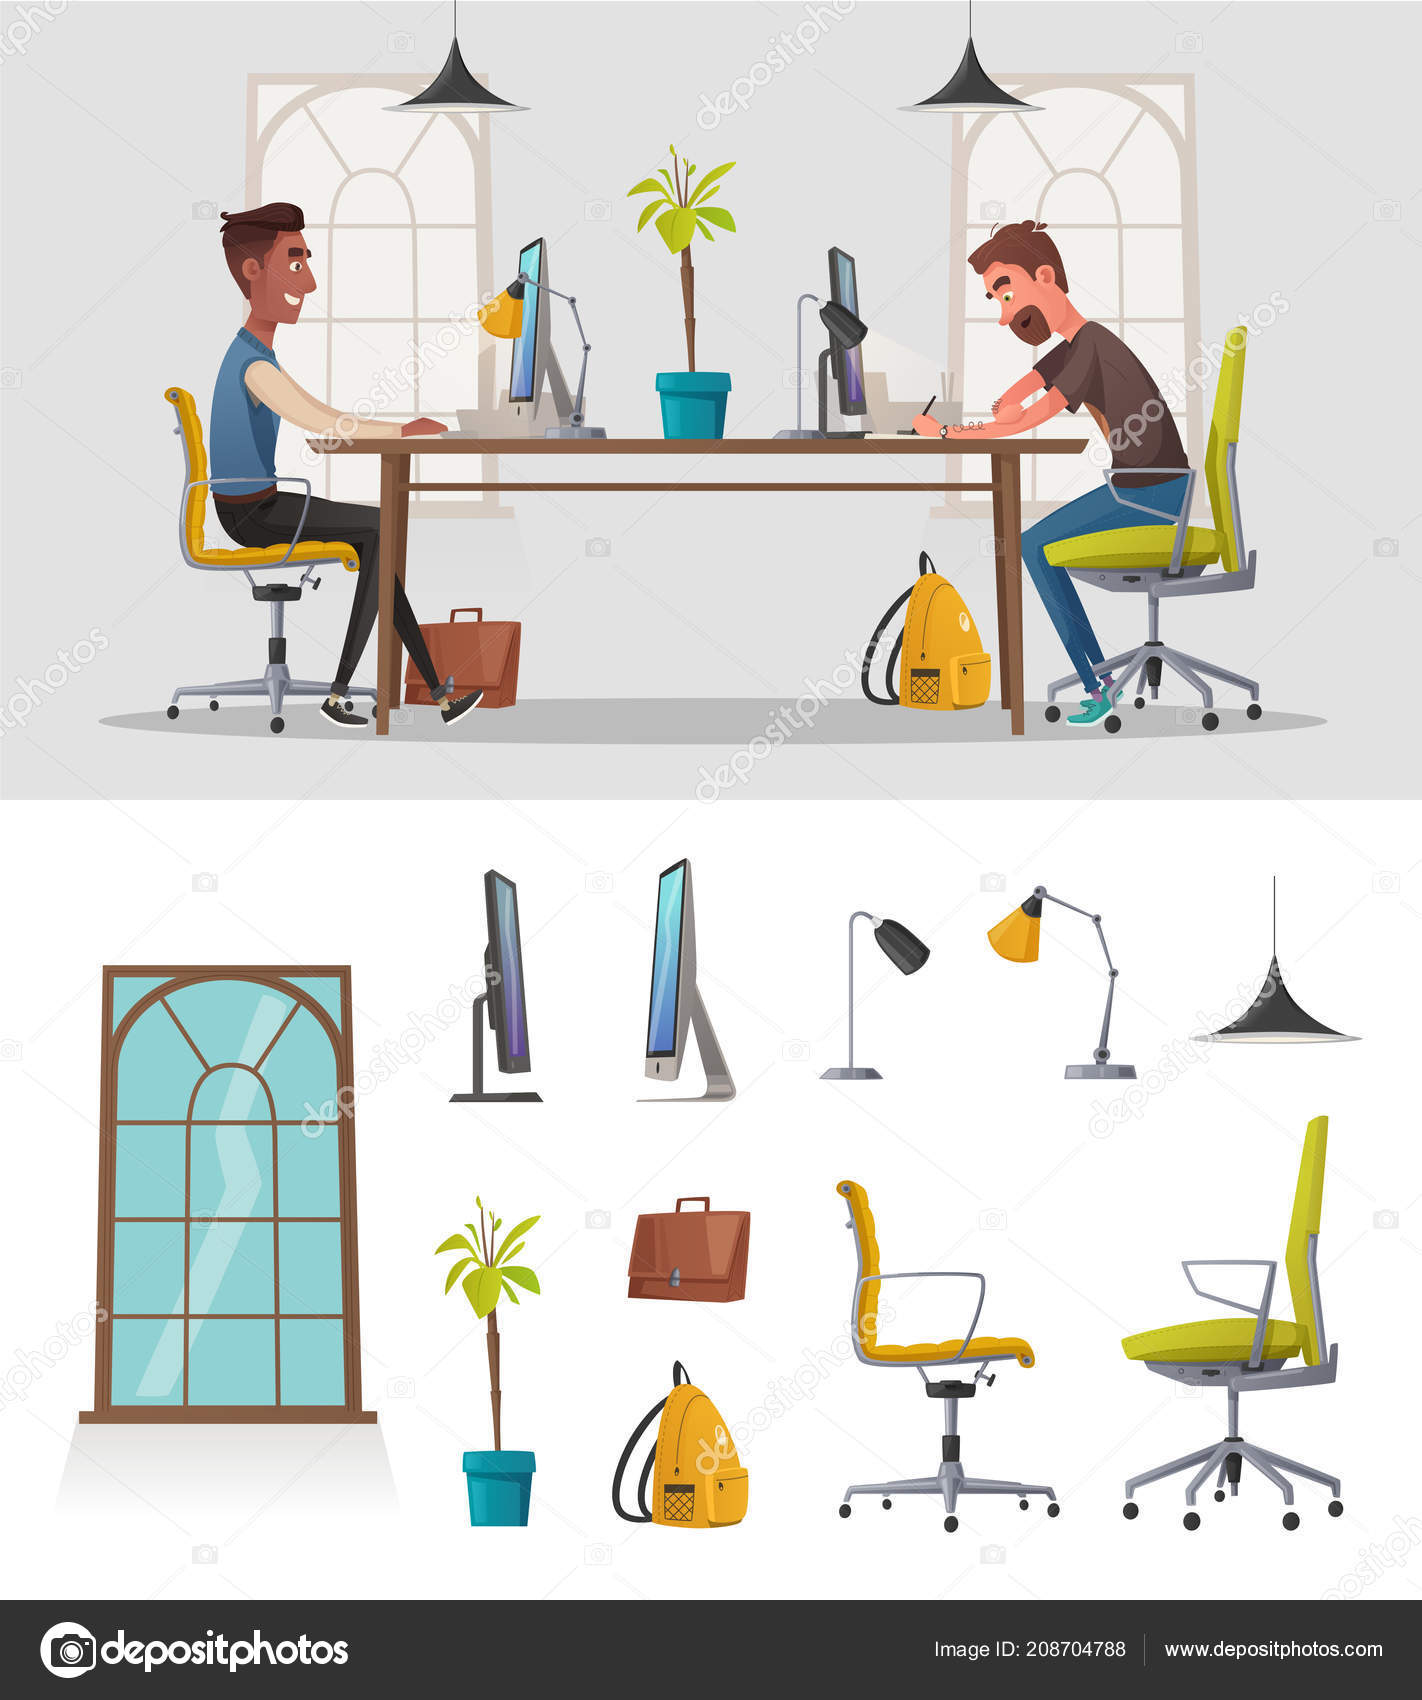 Funny Business Characters Working Cartoon Vector Illustration